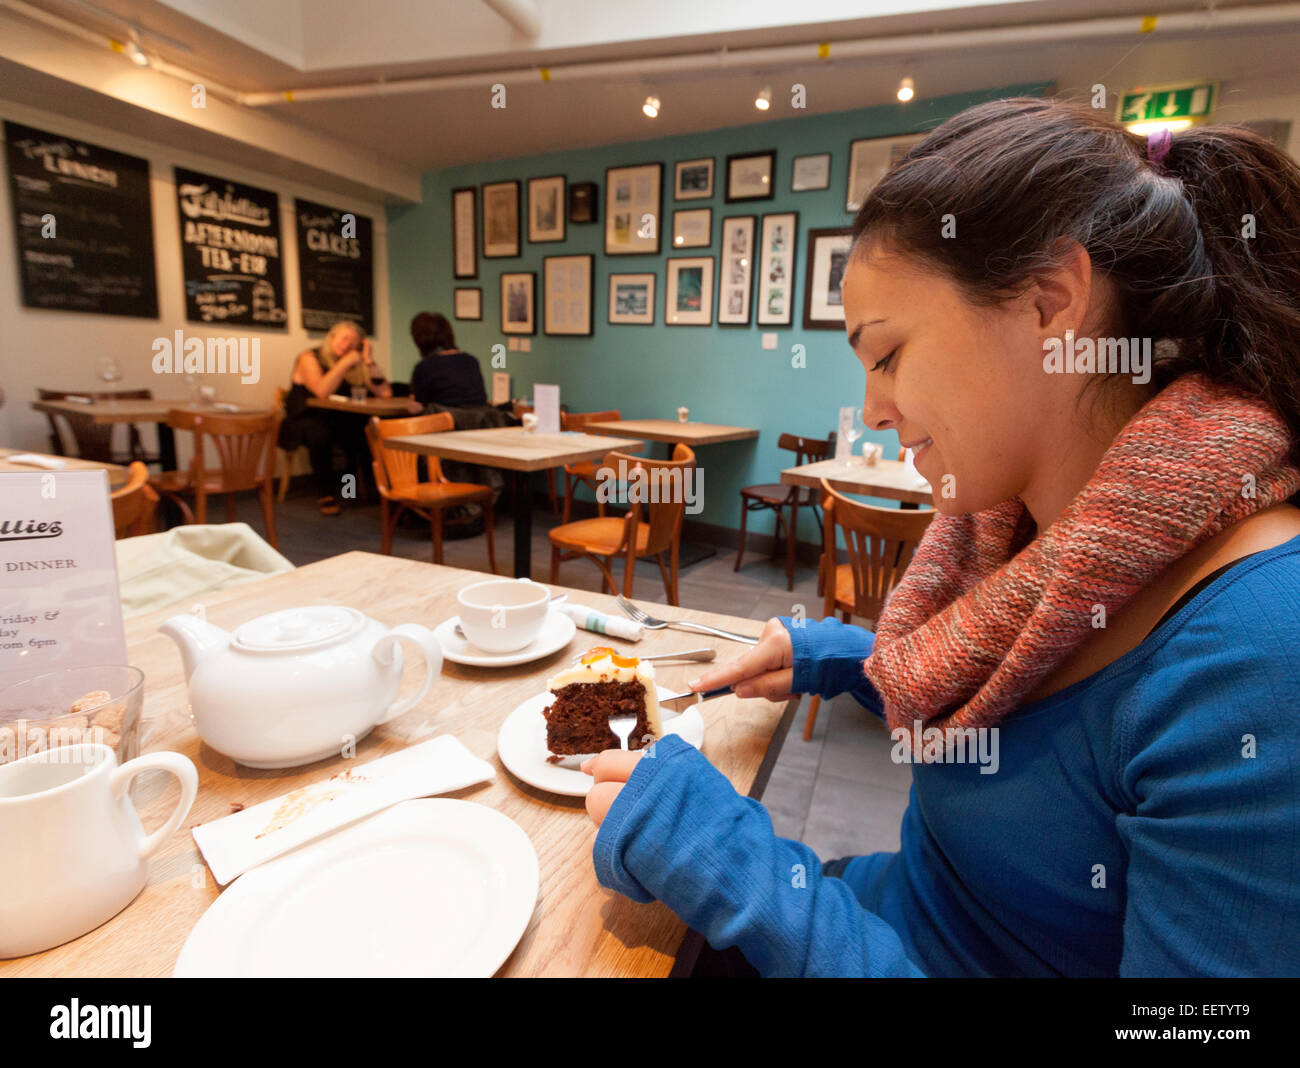 A young woman eating a cake, the interior, Fitzbillies cake shop, Cambridge England UK Stock Photo